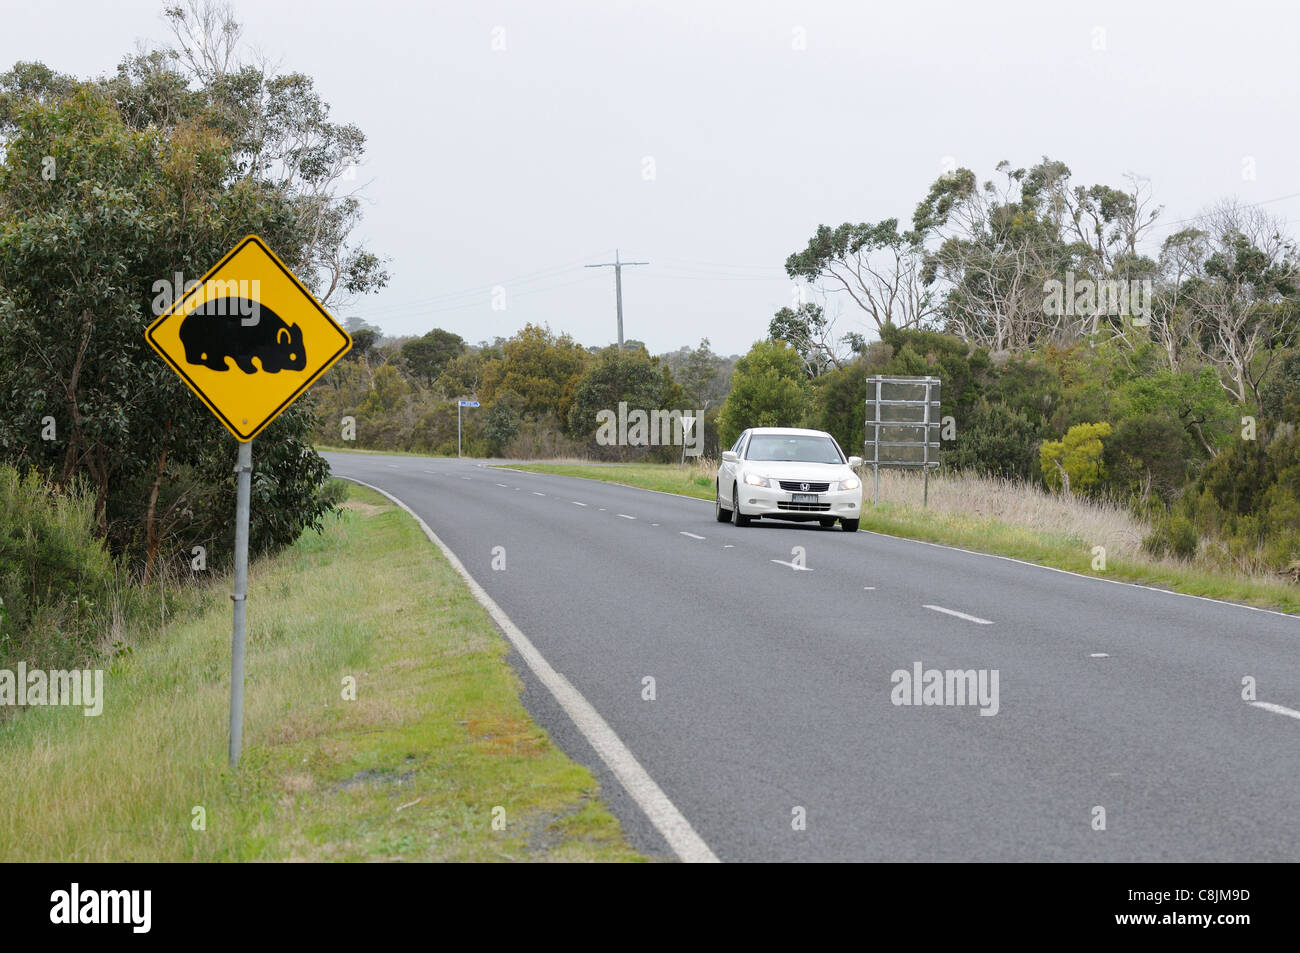 Wombat road sign Photographed in southern Australia - Stock Image